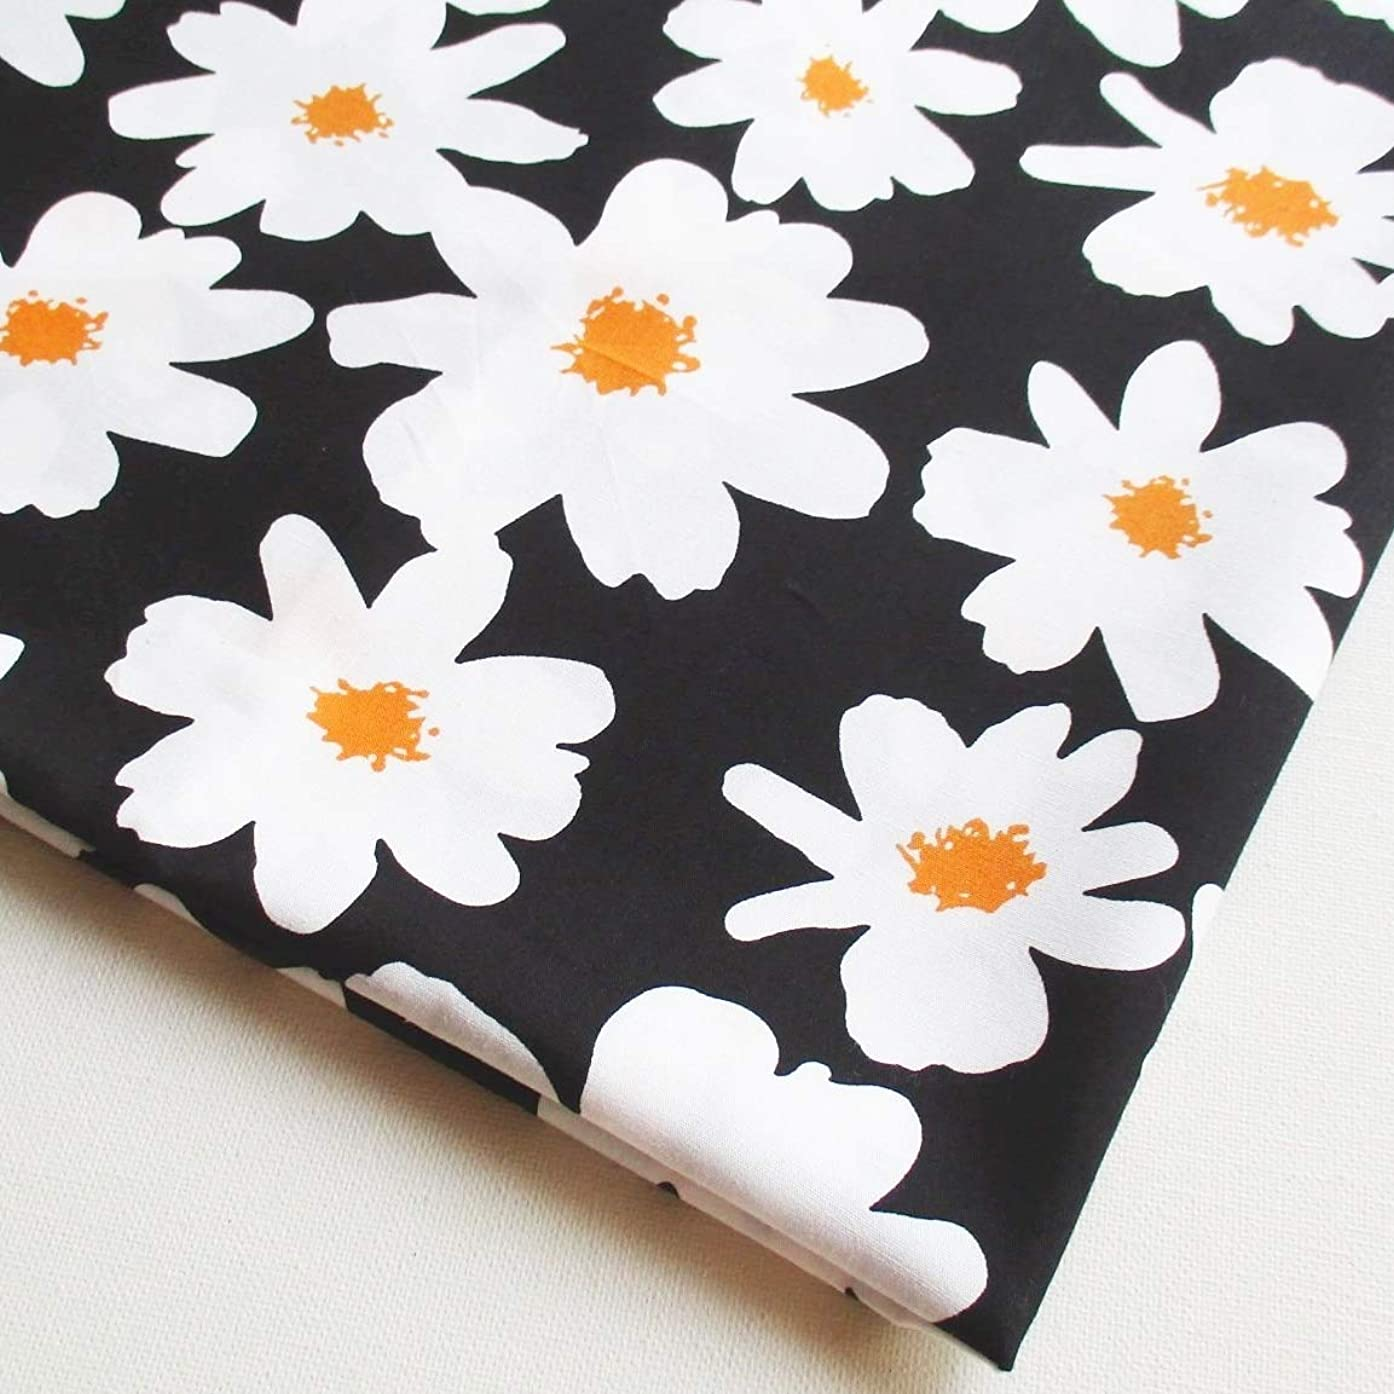 White Daisy Flower Yellow in The Garden Cotton Floral on Black Fabric 36 by 36-Inch Wide (1 Yard) (CT800)